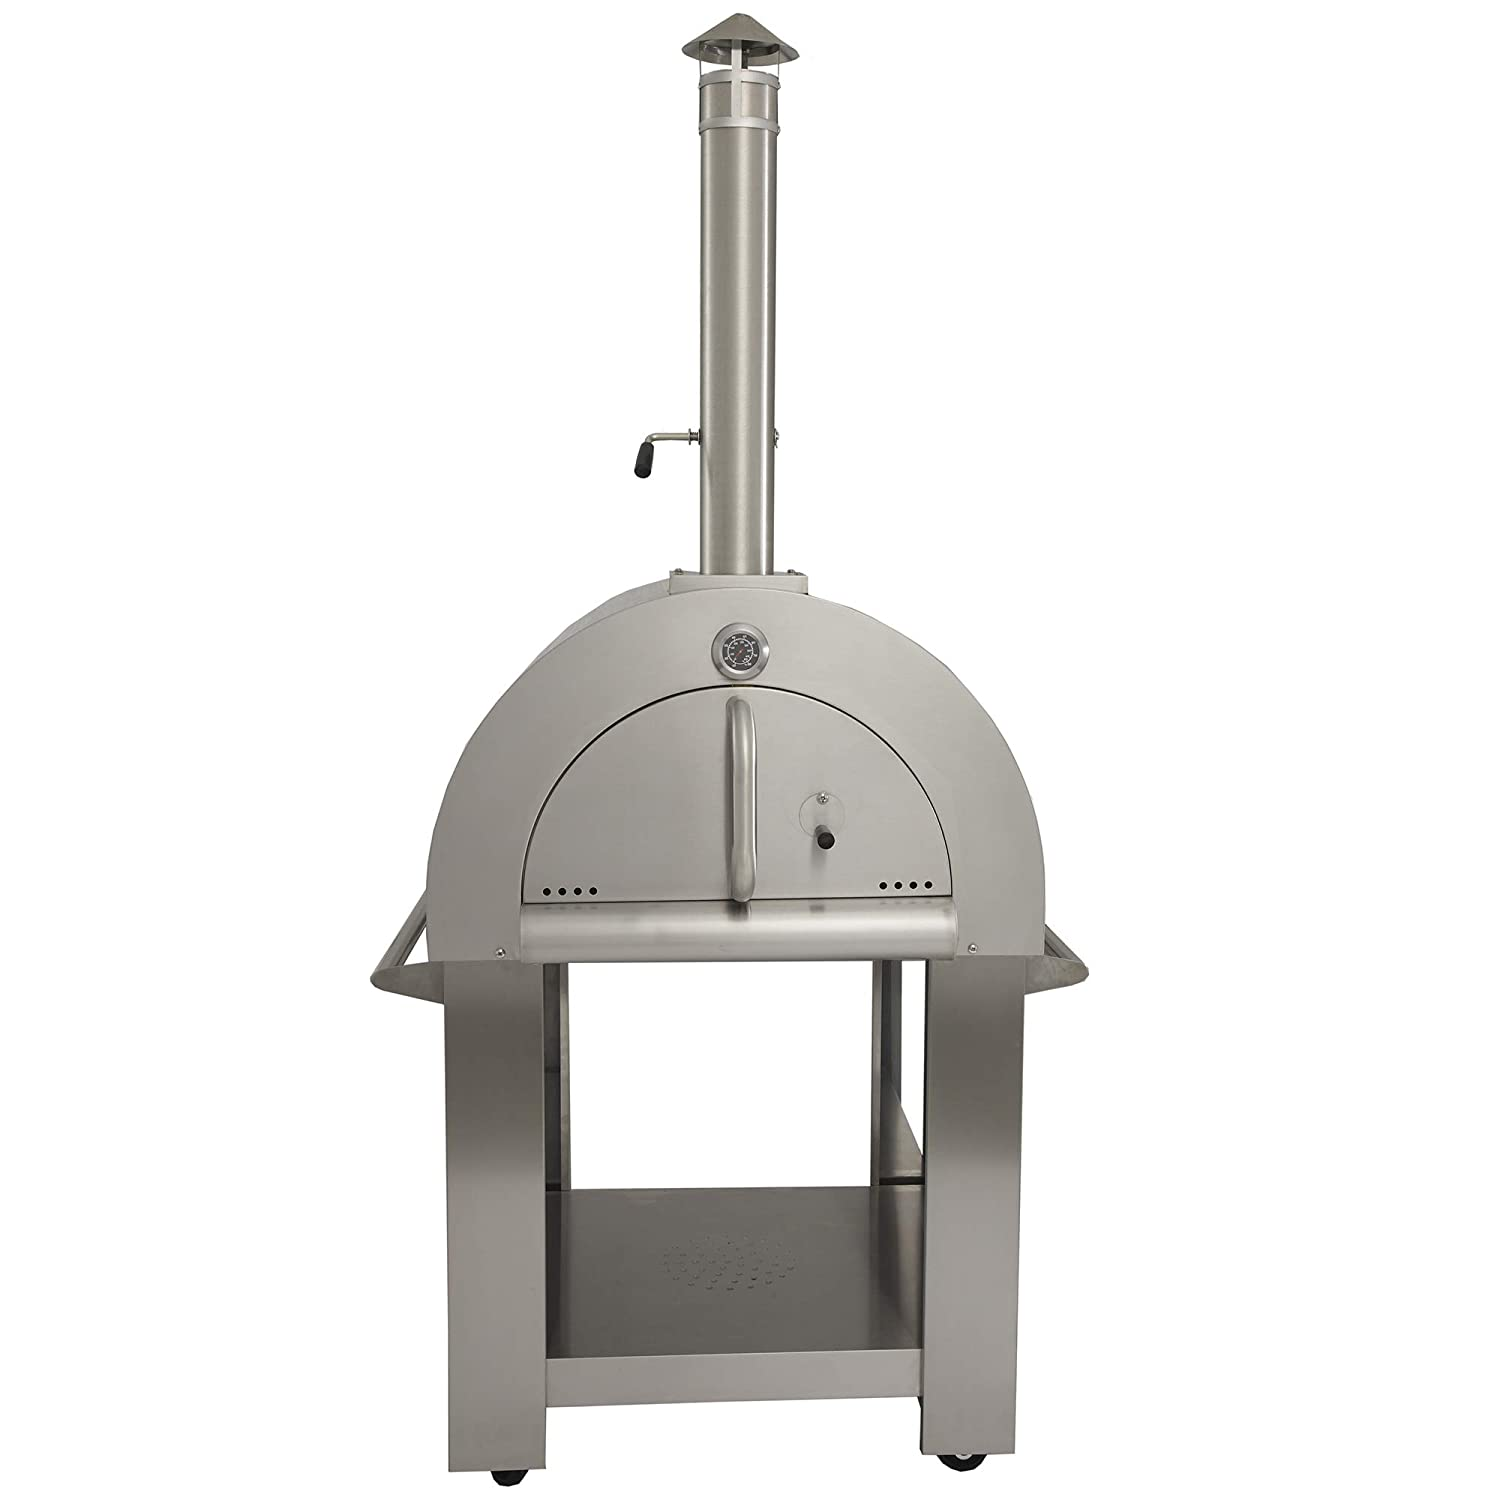 Amazon.com: KUCHT K186PO Professional Stainless Steel Pizza ...